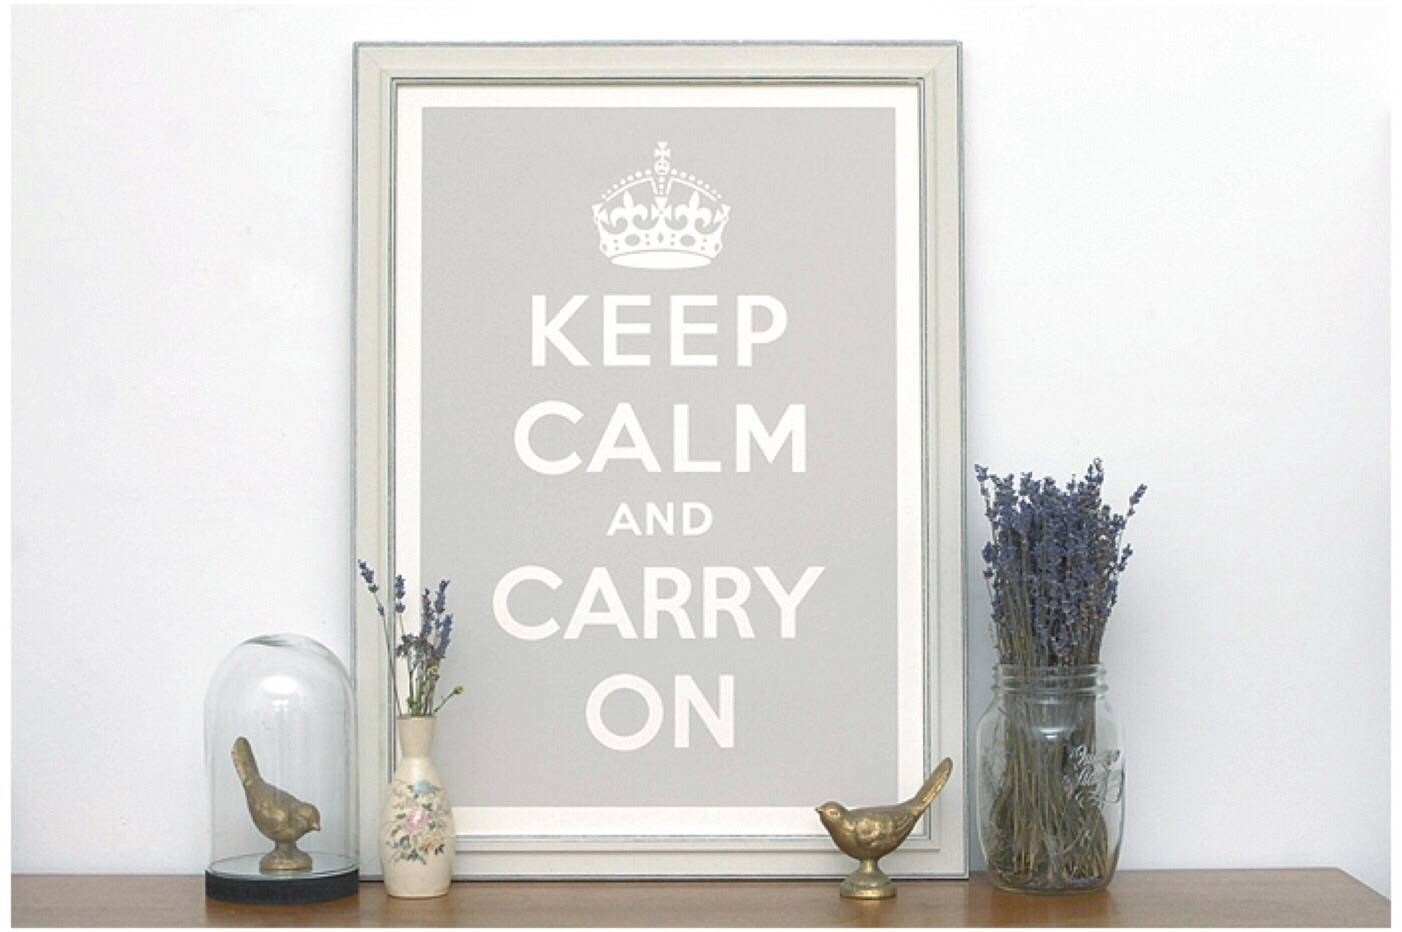 Keep Calm Wall Art Print Inside Newest Keep Calm And Carry On Wall Art (View 20 of 25)